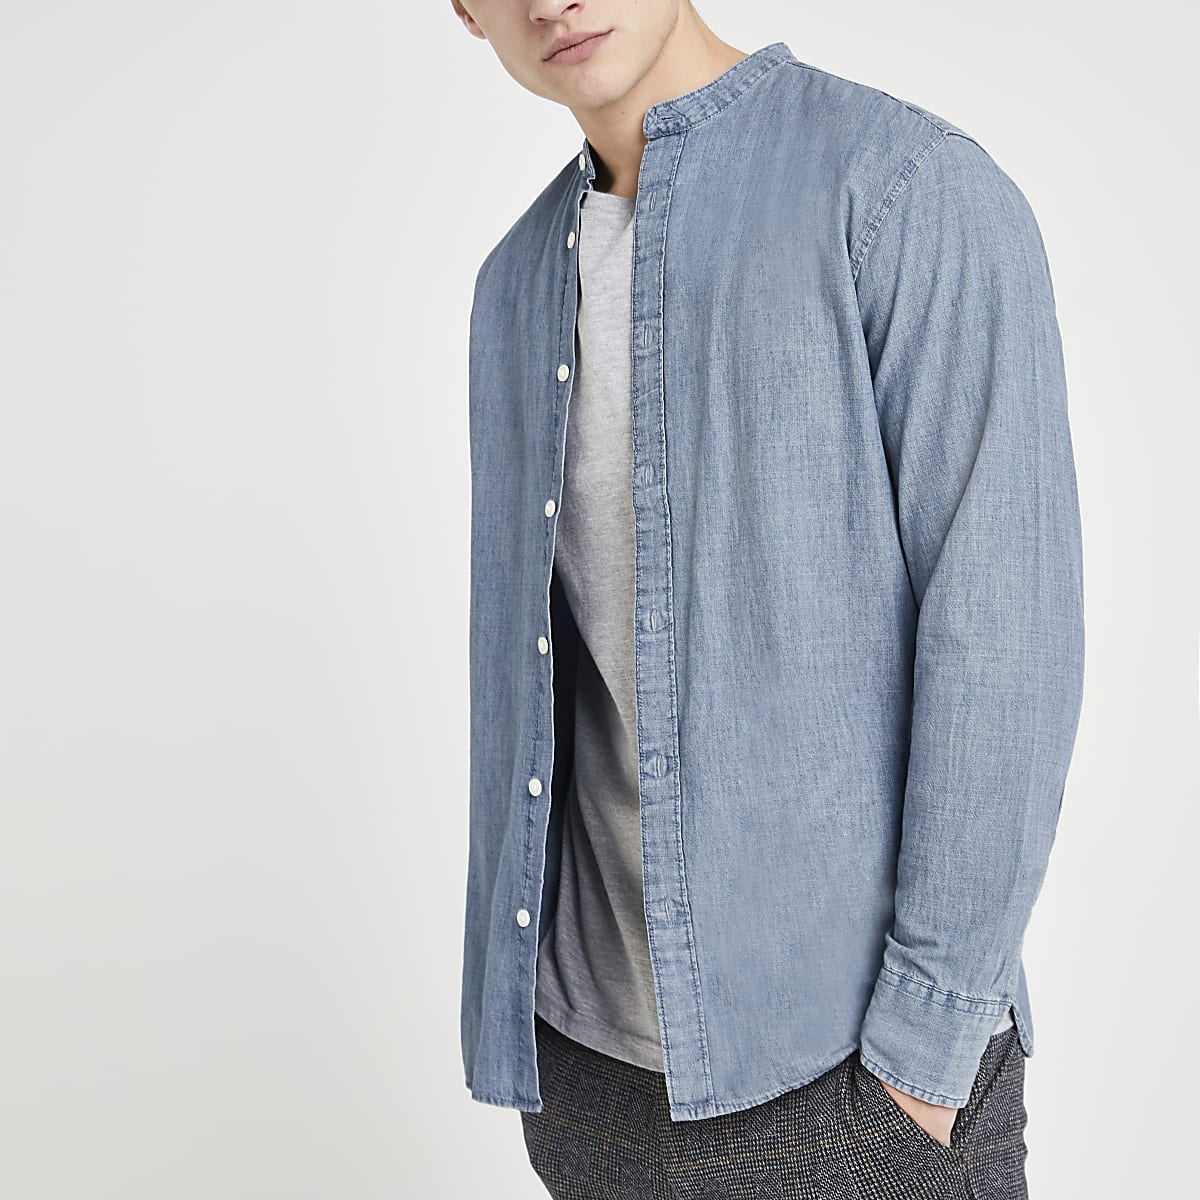 Selected Homme blue regular fit shirt